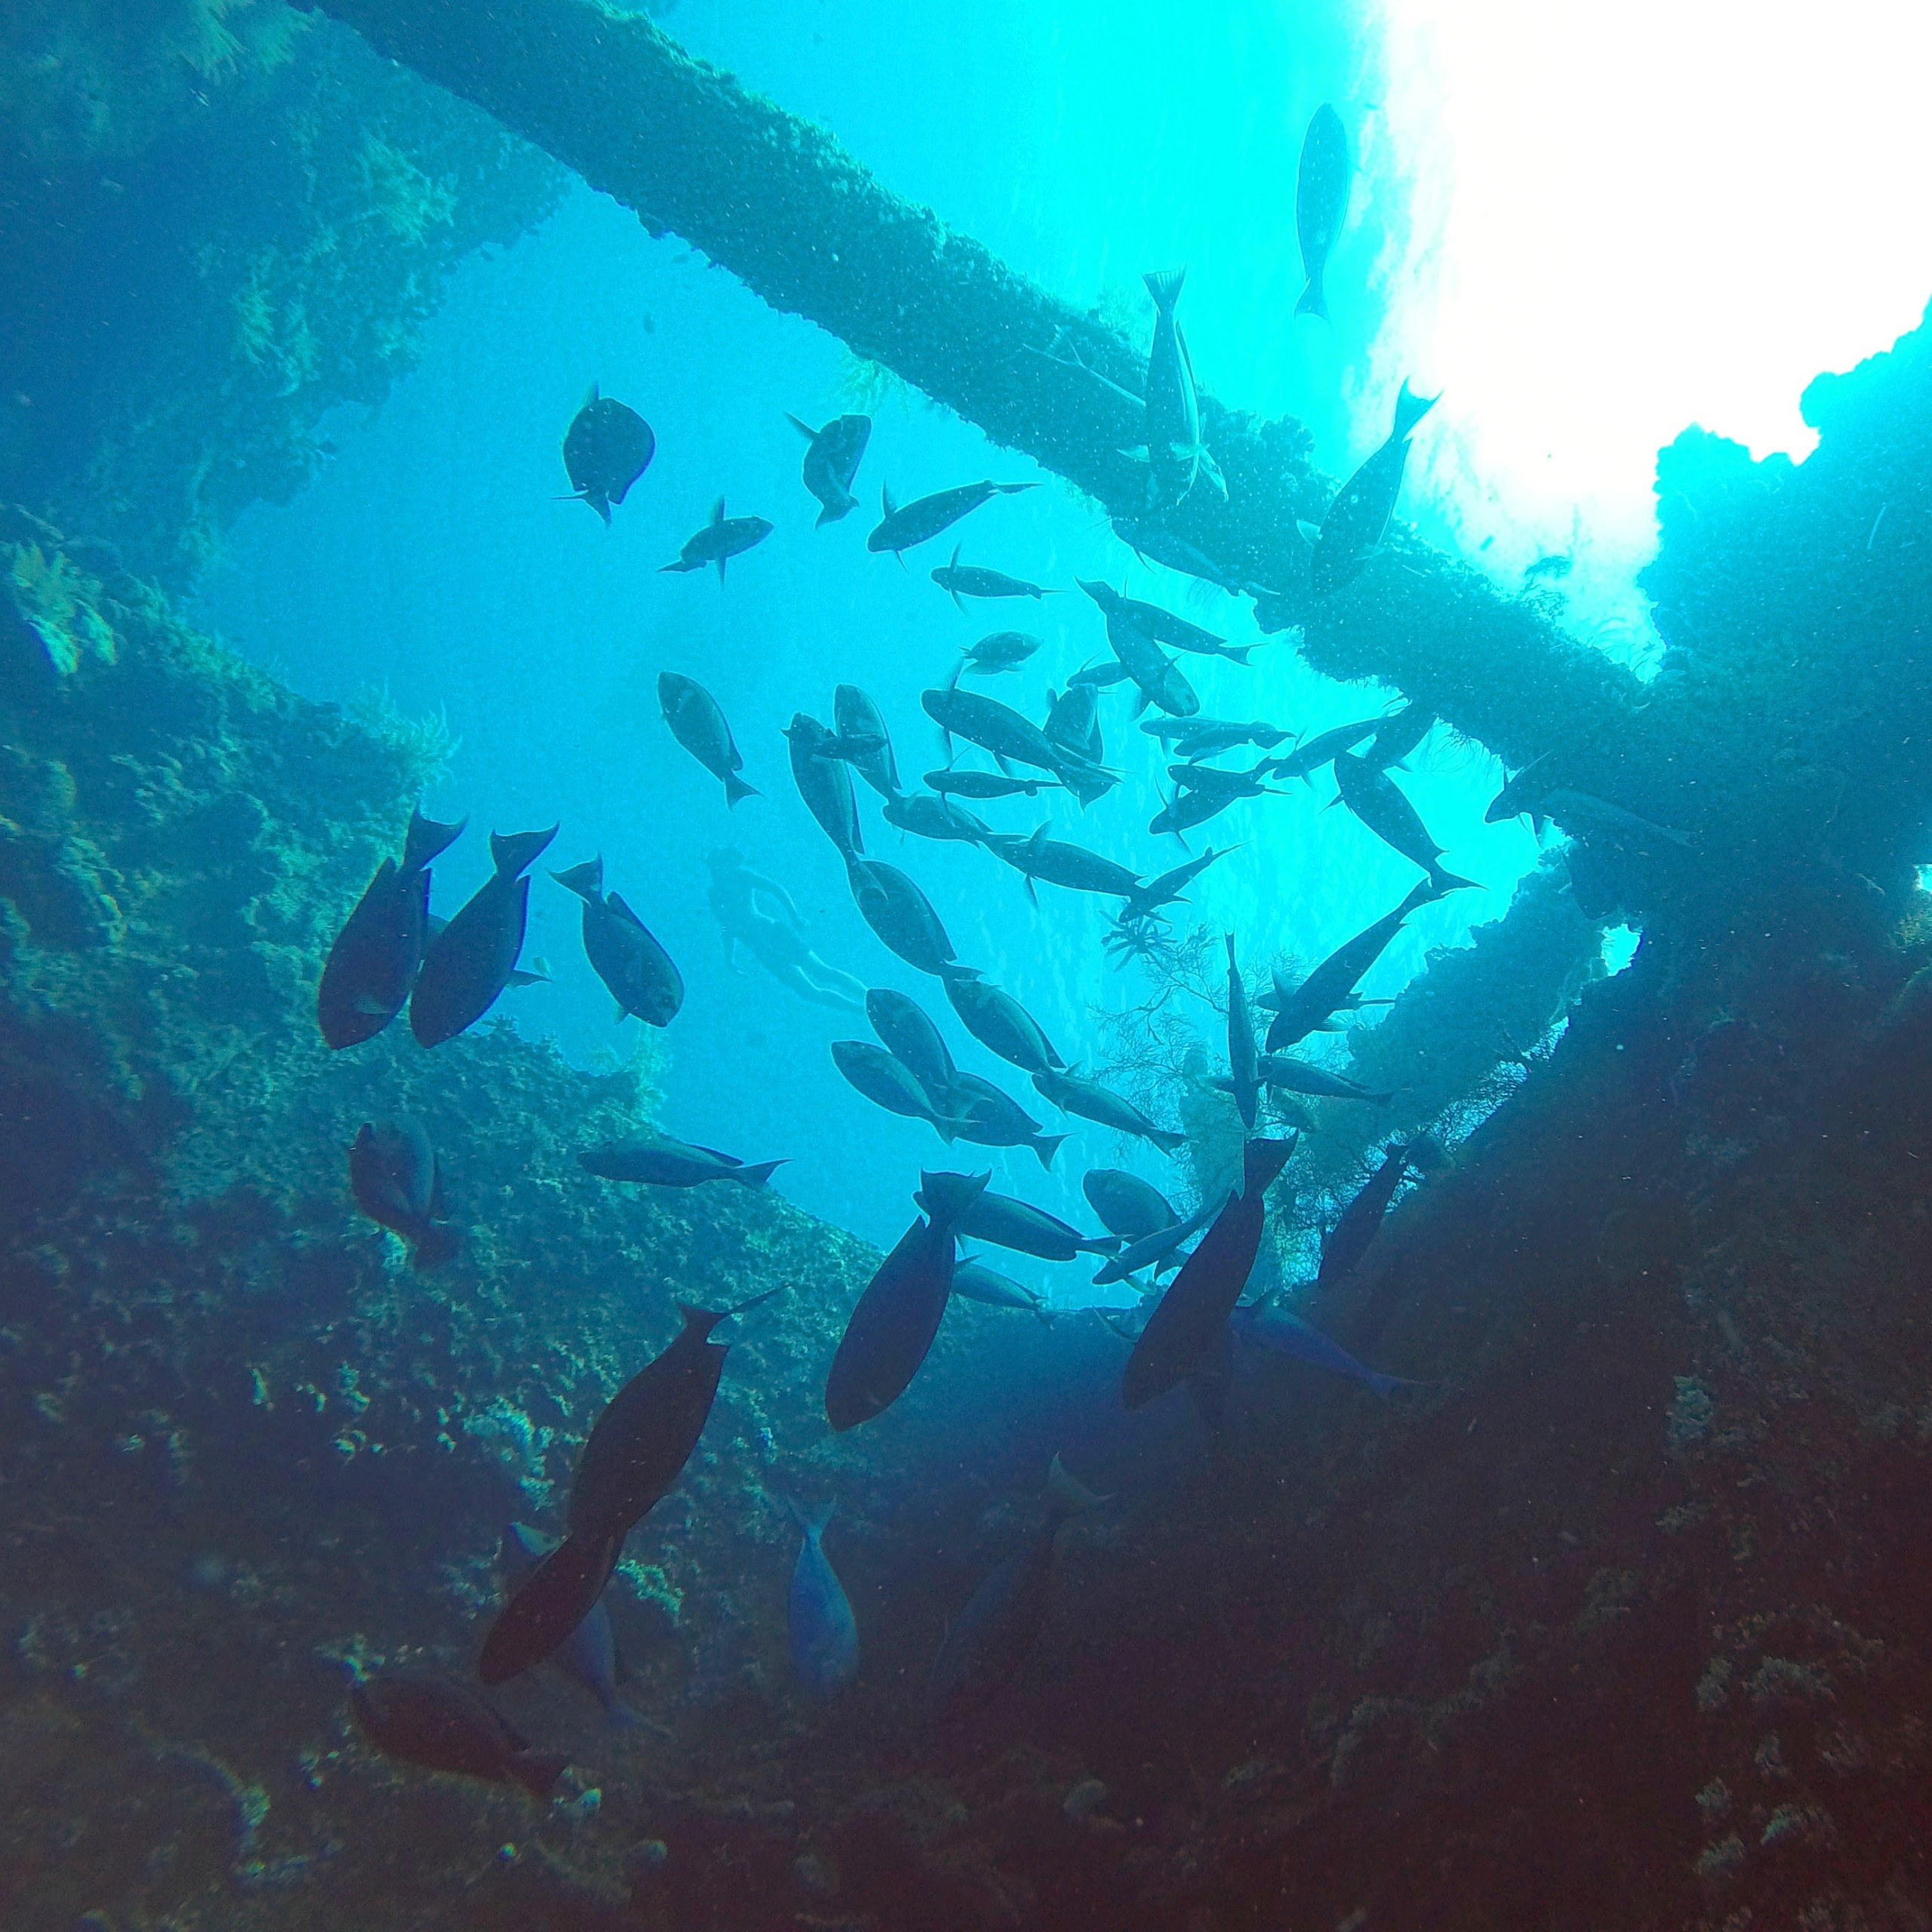 wreck diving spot Tulamben Amed | Atlantis Bali Diving